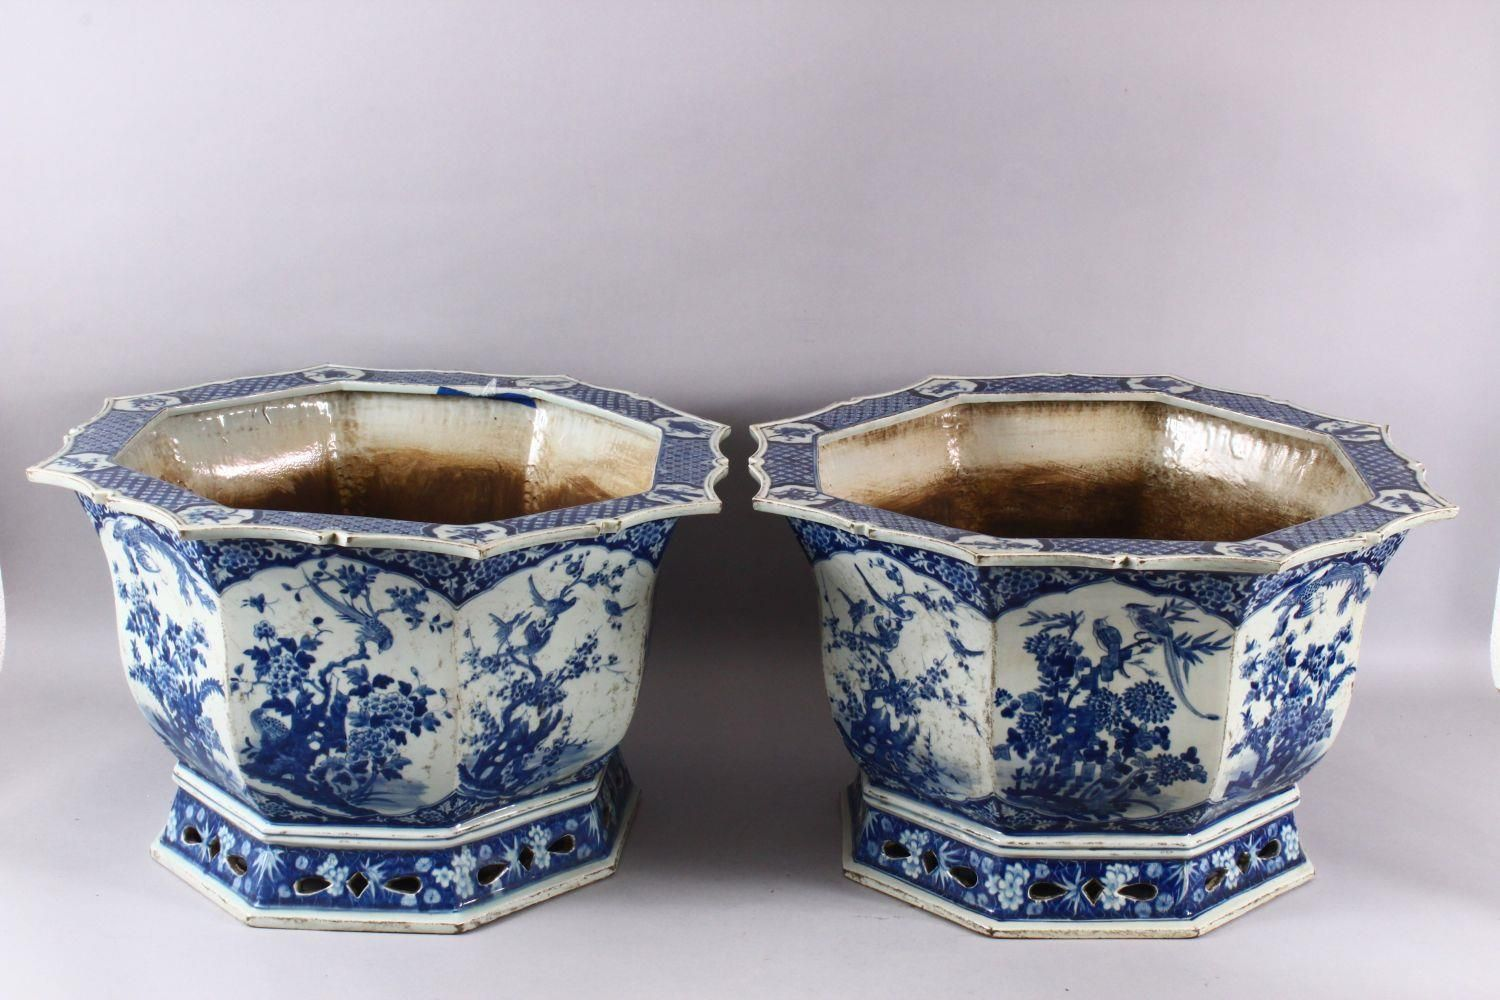 A PAIR OF LARGE CHINESE BLUE & WHITE OCTAGONAL PORCELAIN JARDINIERE / PLANTERS, decorated with - Image 2 of 8